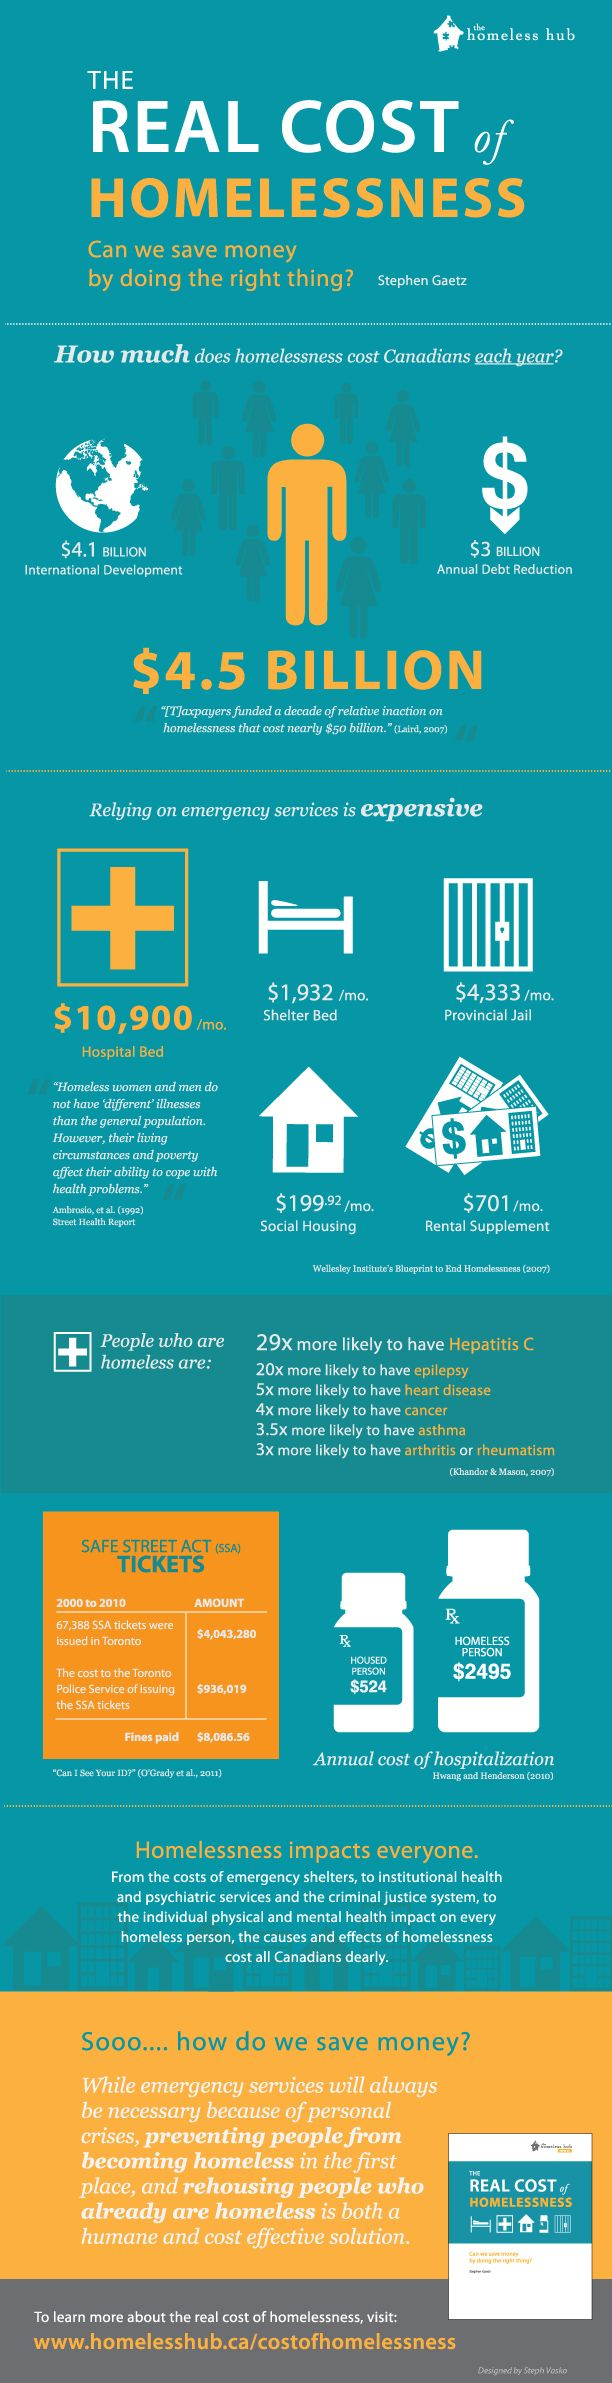 It is more cost effective to end #homelessness & provide #housing